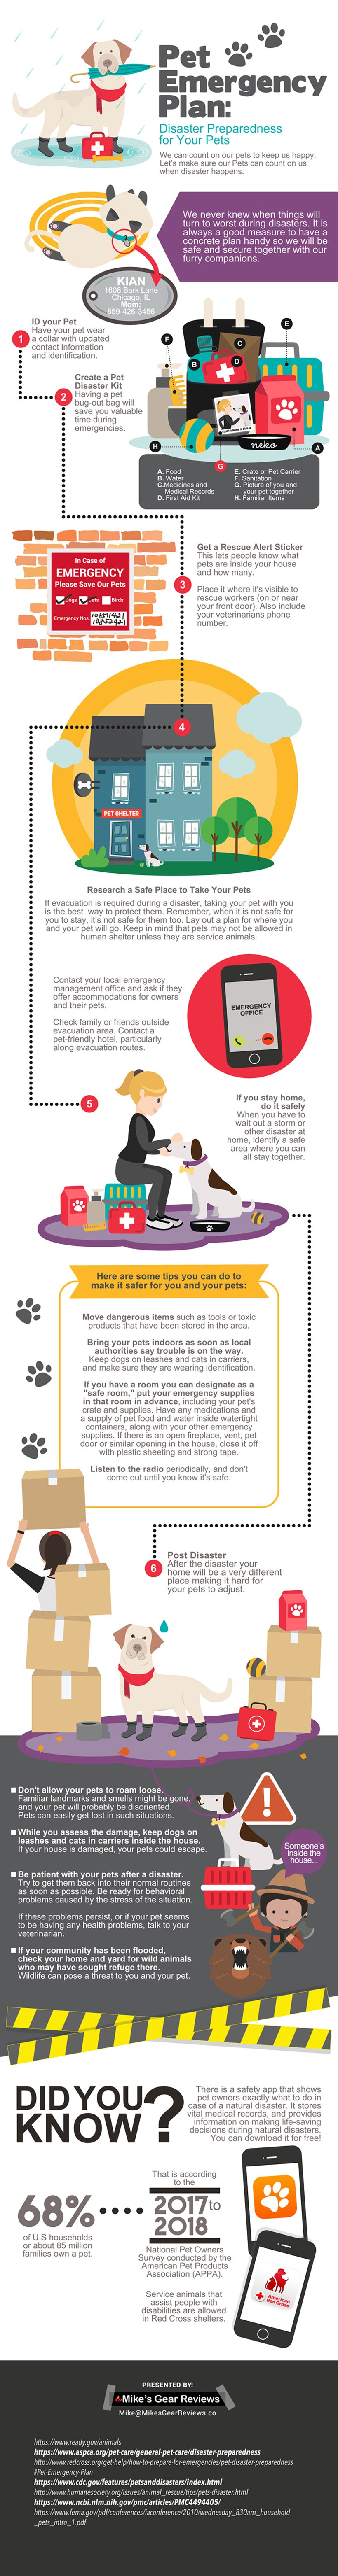 how to prepare your dog for an emergency